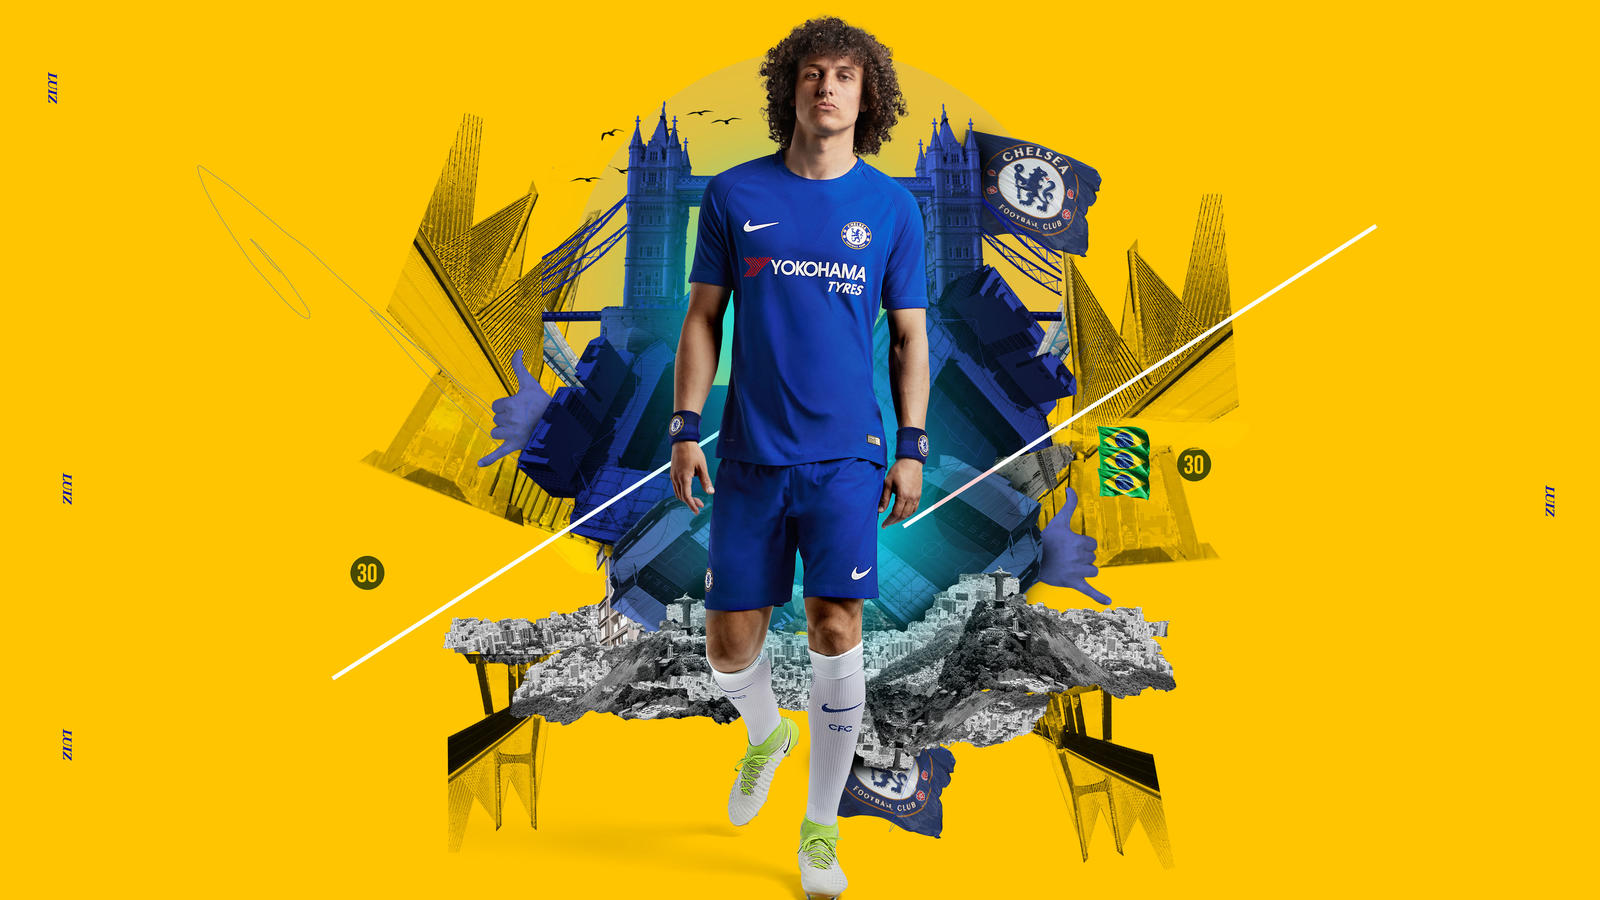 David Luiz Wallpapers 62 images in Collection Page 1 1600x900